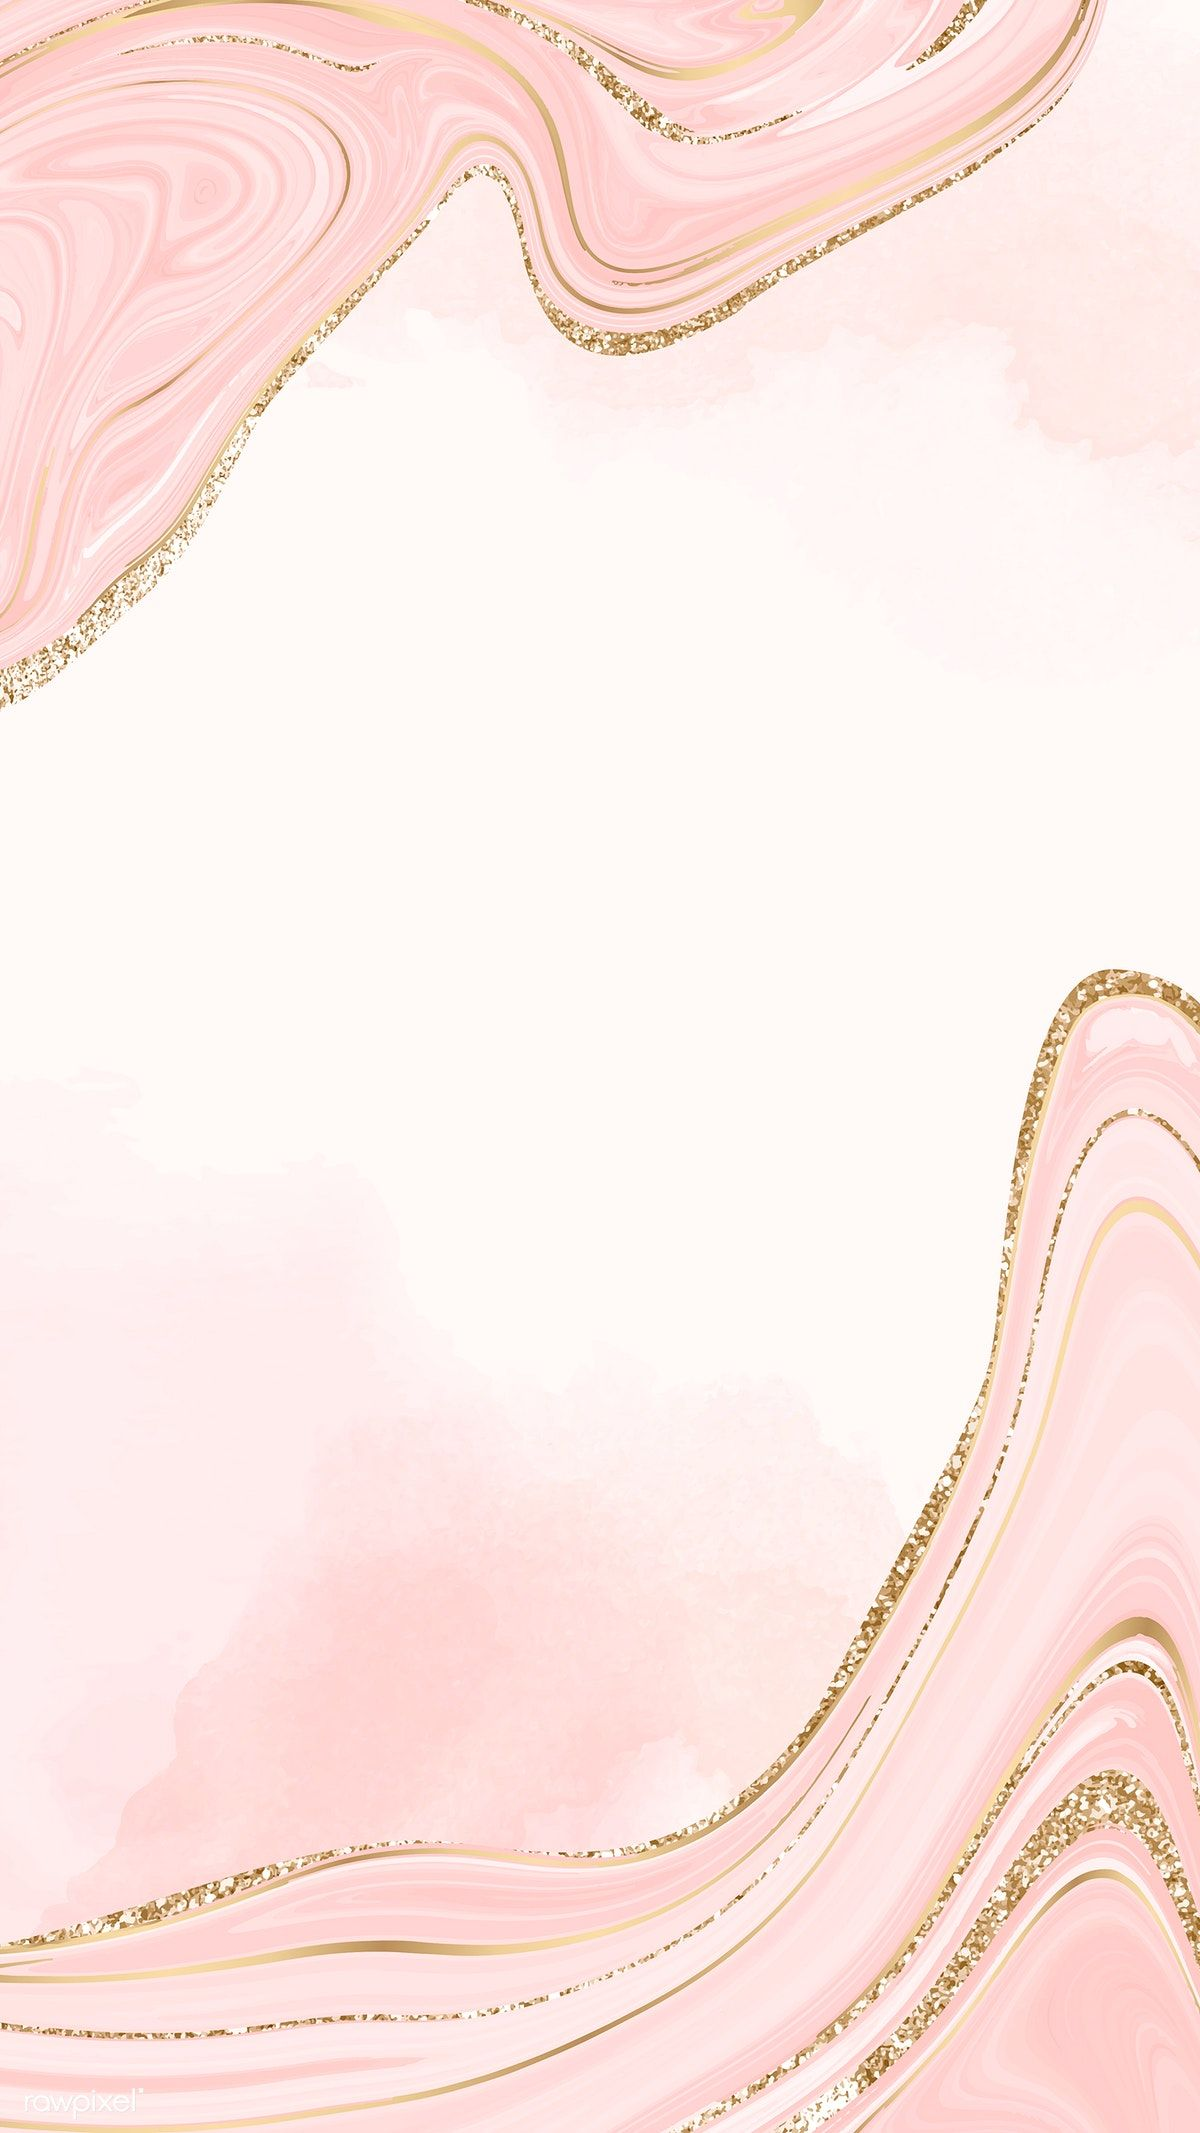 Download Premium Vector Of Gold And Pink Fluid Patterned Mobile Phone Marble Wallpaper Phone Gold Wallpaper Iphone Pink And Gold Wallpaper